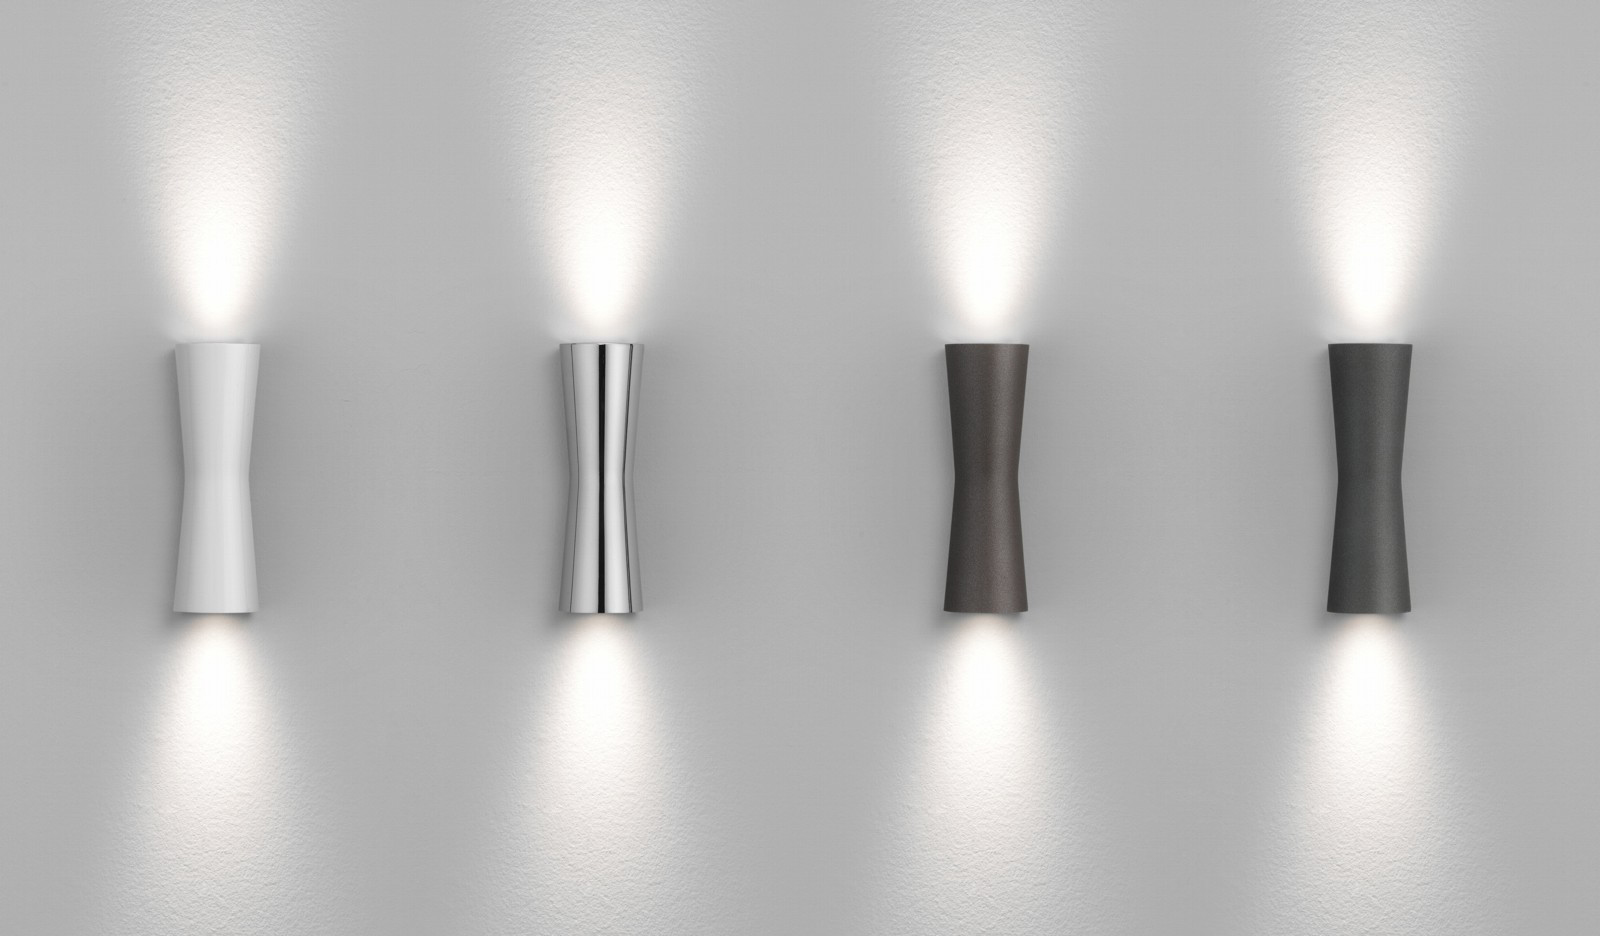 Clessidra modern up down contemporary wall spot light for for Contemporary bathroom wall sconces